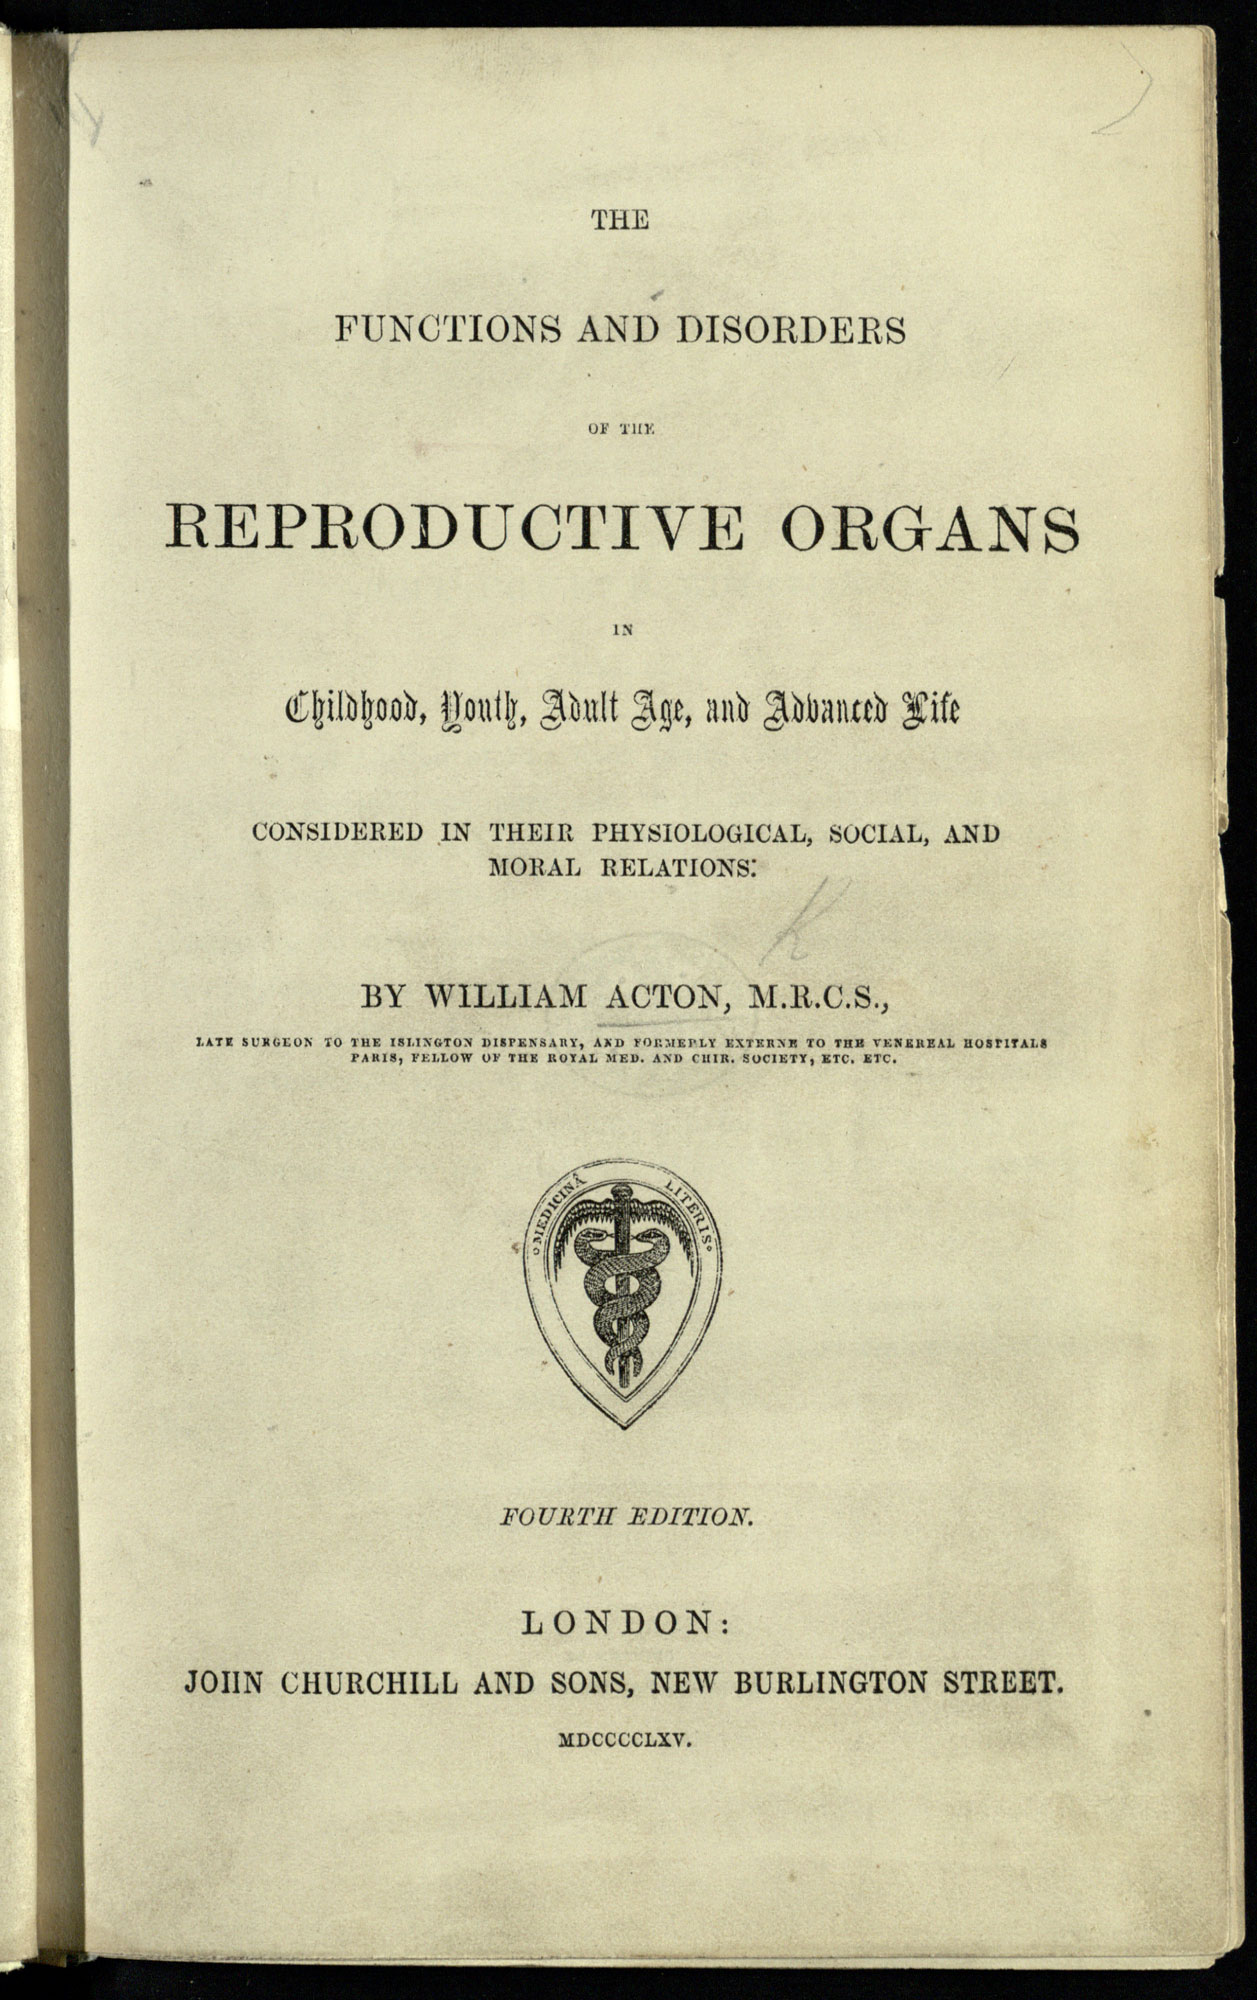 19th Century Medical Views On Female Sexuality The British Library